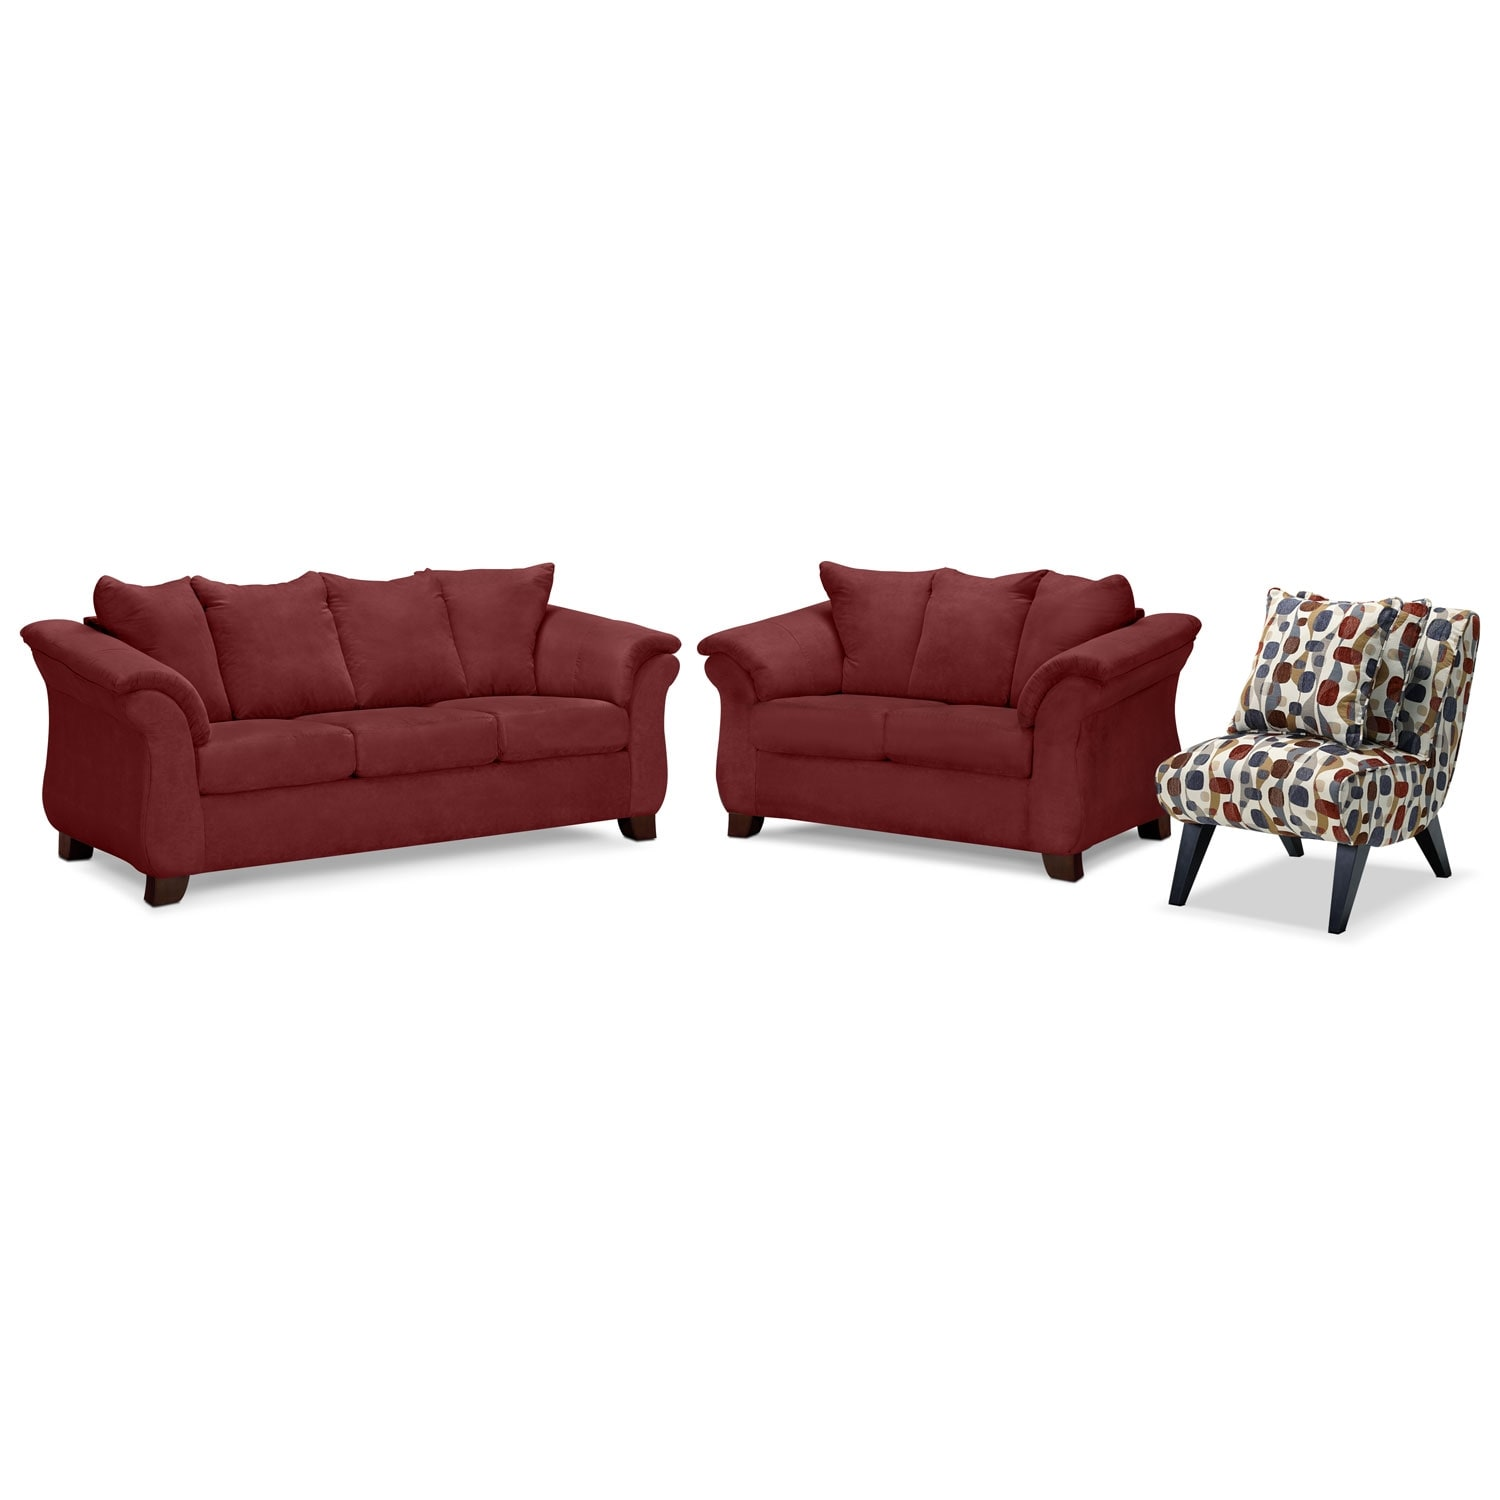 Adrian Sofa, Loveseat and Accent Chair Set - Red